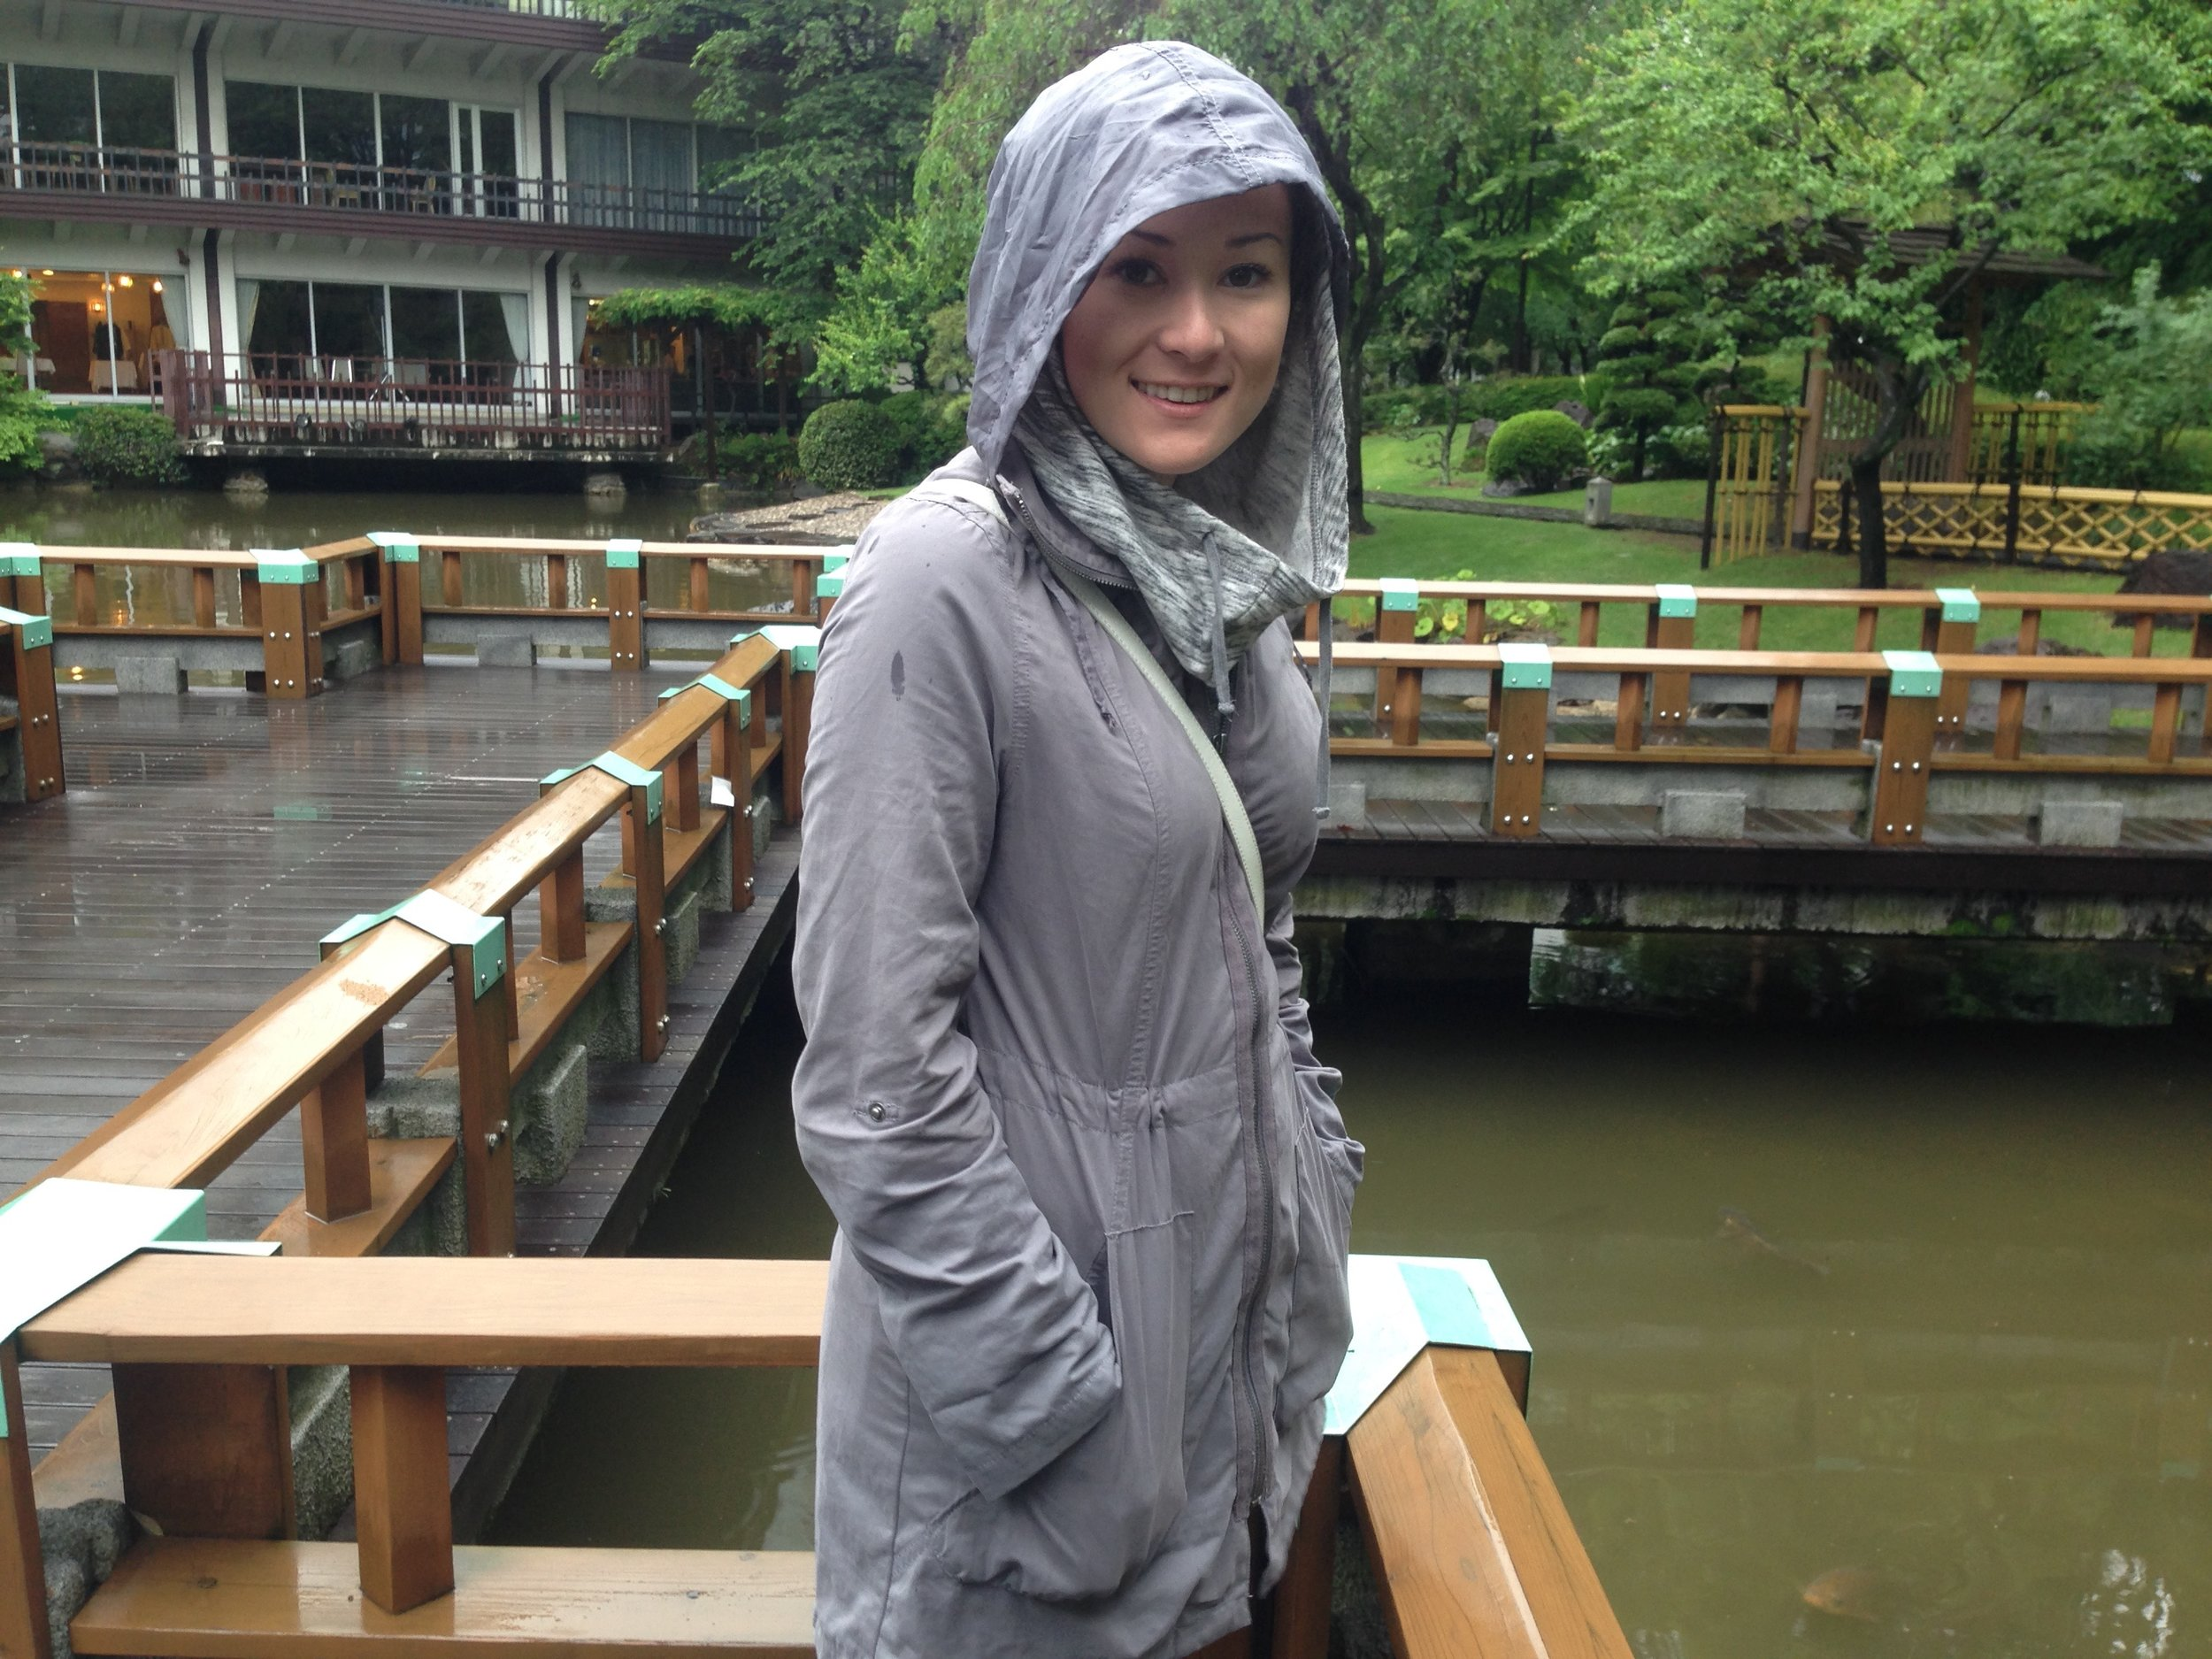 Me at the koi pond. Sometimes a rainy day still makes for a pretty one.